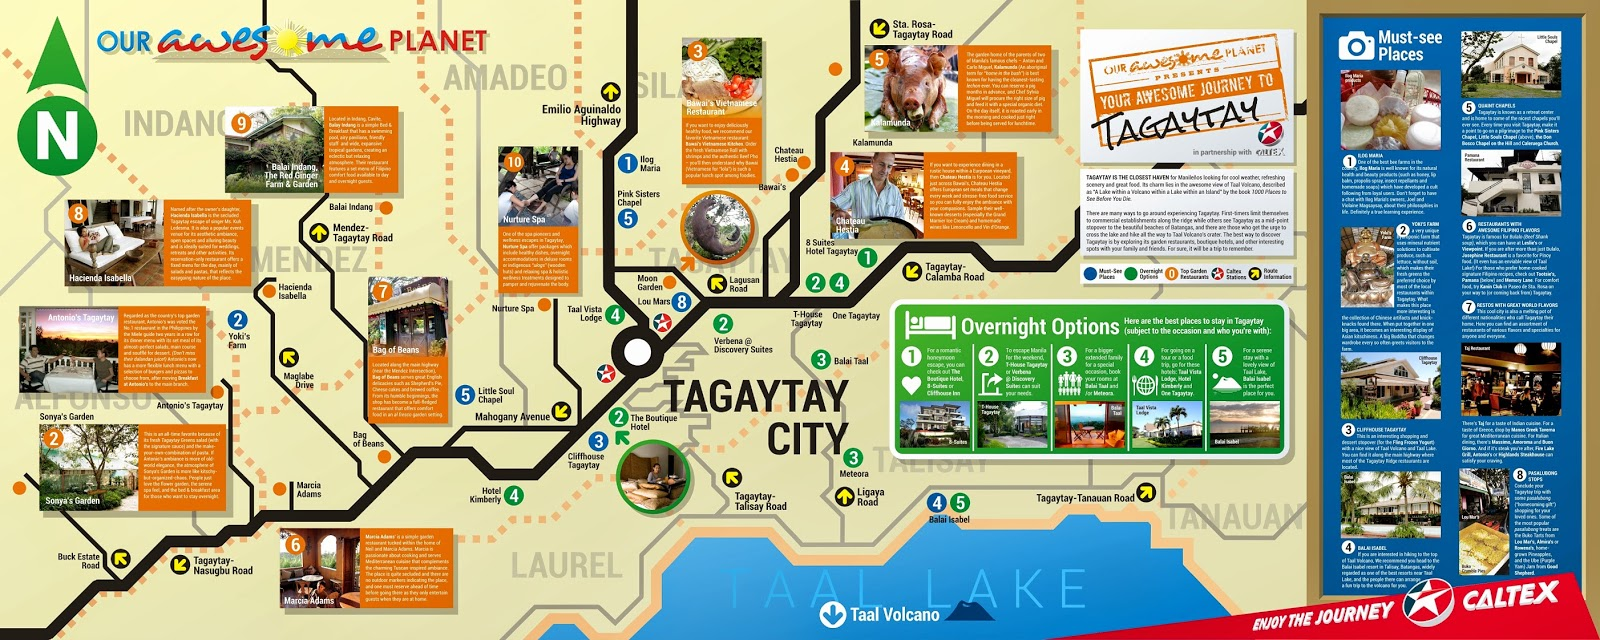 Tagaytay City Tourist Guide Infographic